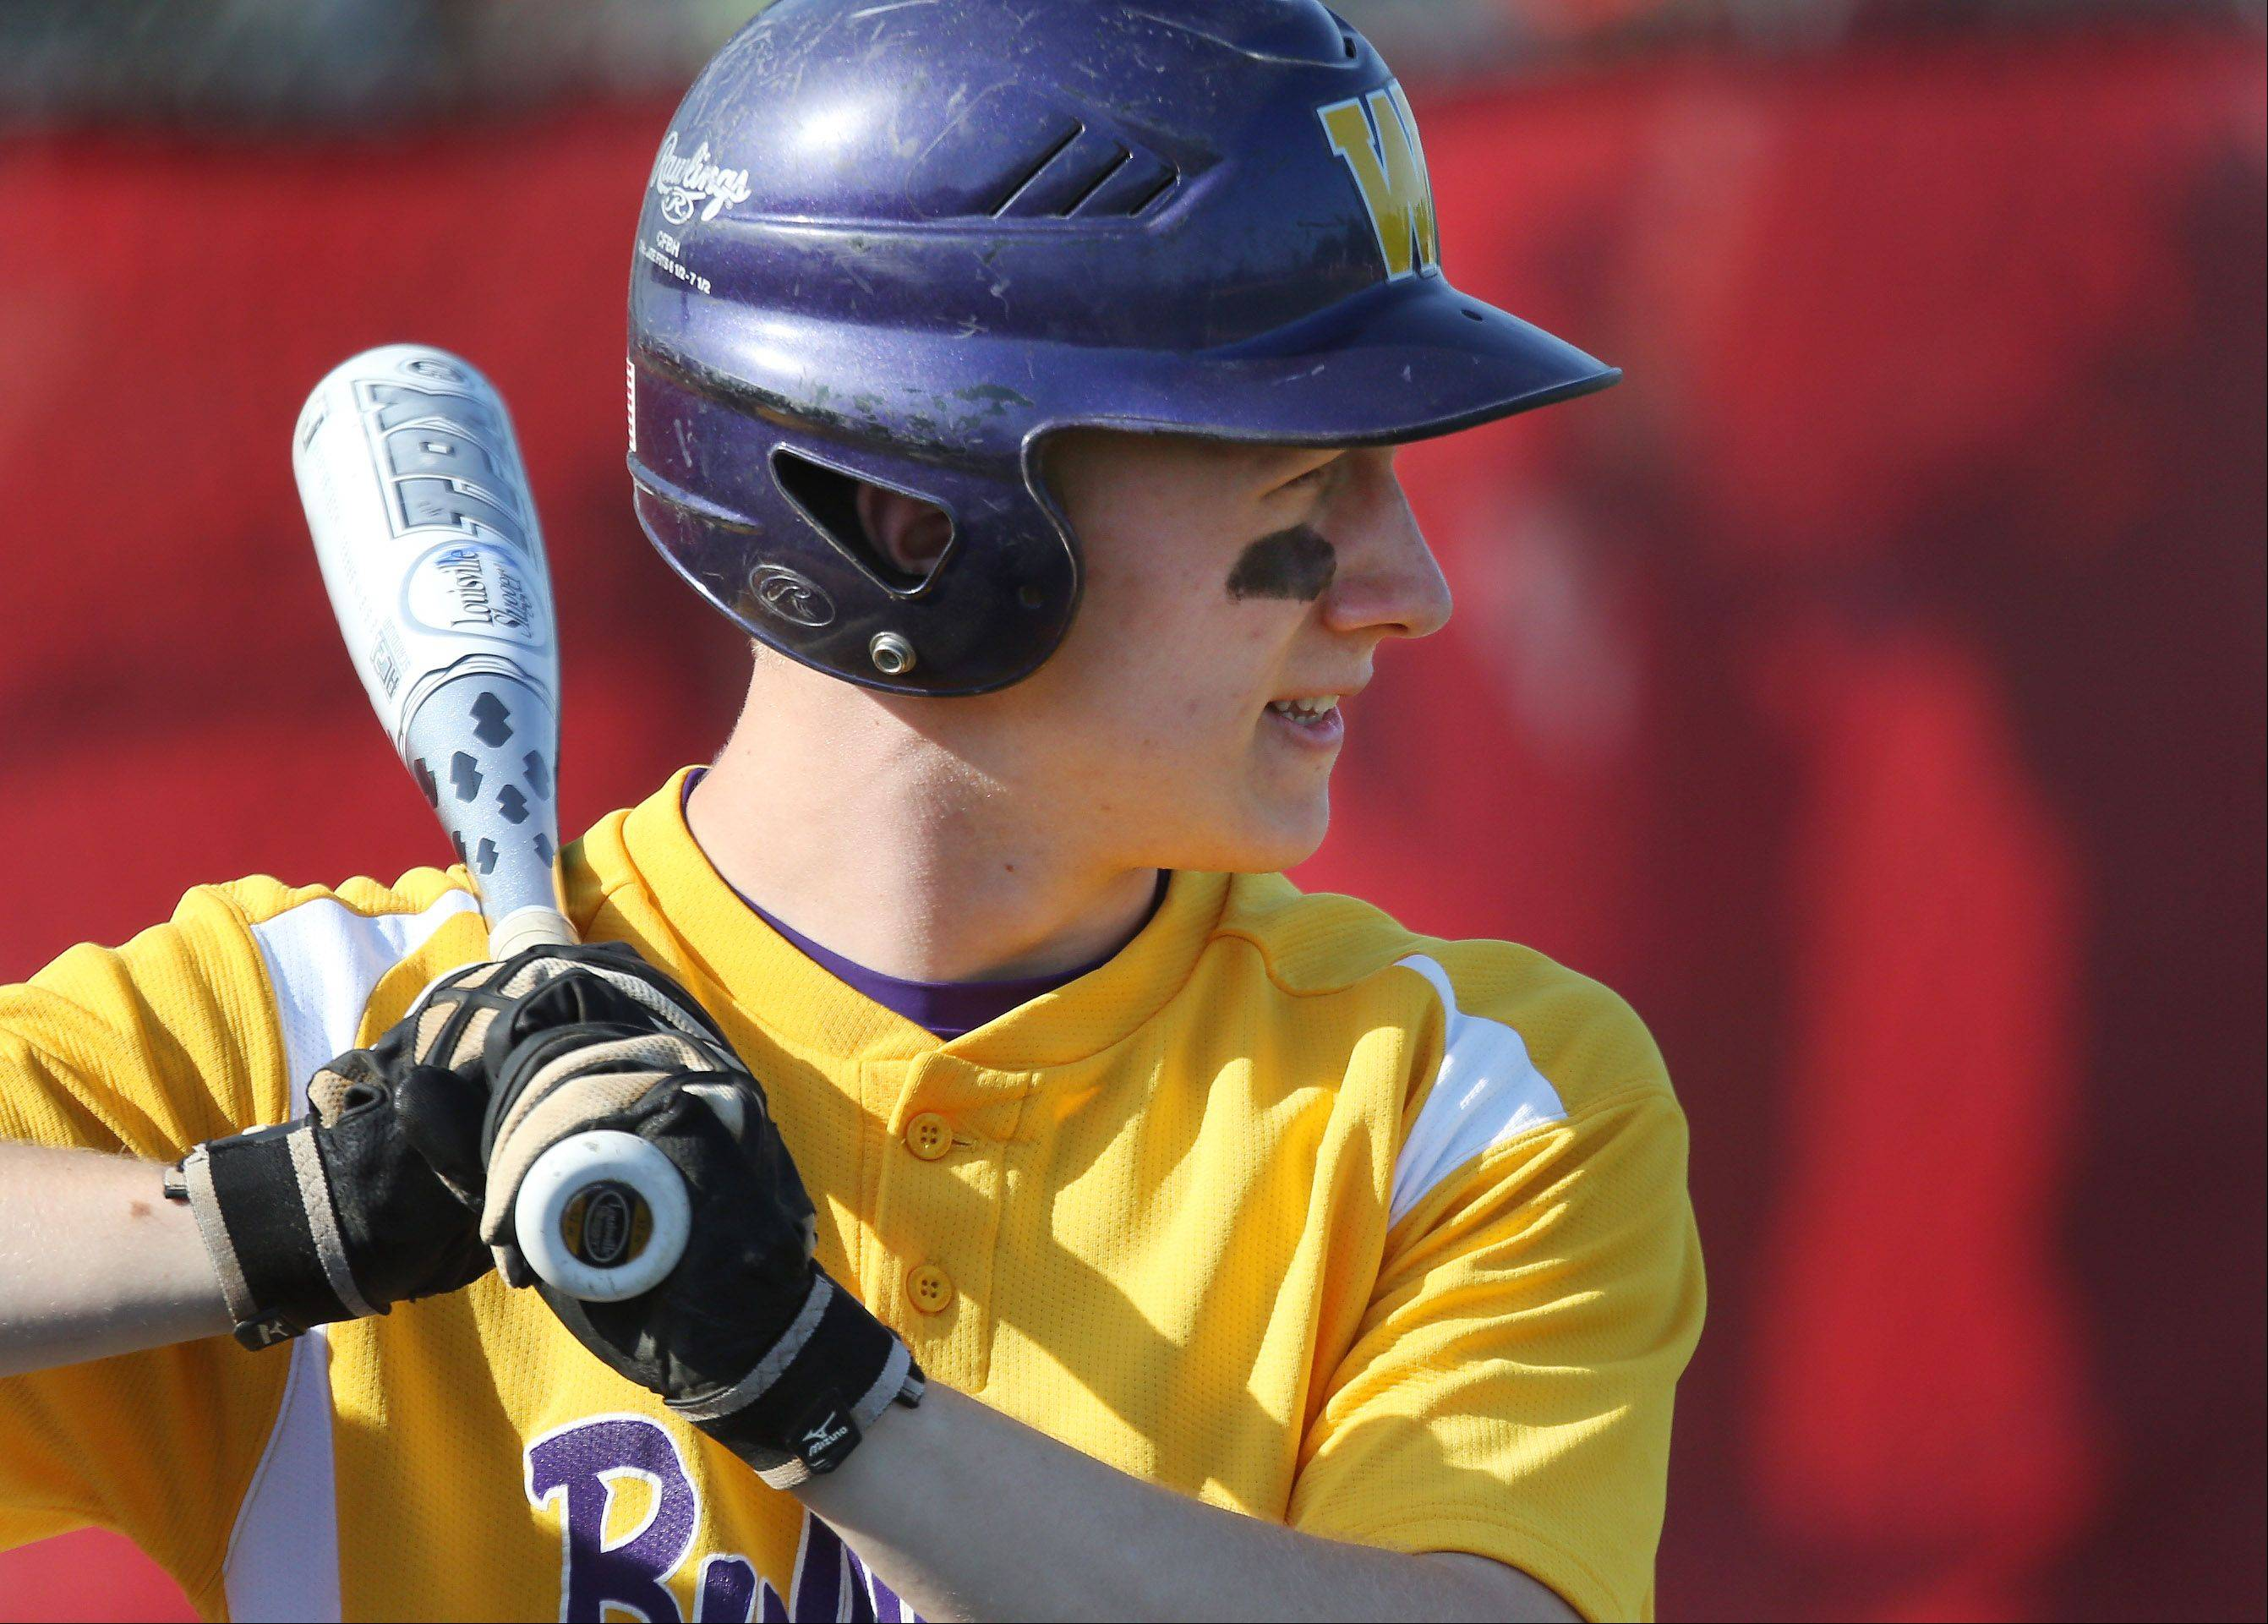 Wauconda shortstop Brandon Gibis waits to bat during the North Suburban Conference baseball championship game Thursday.